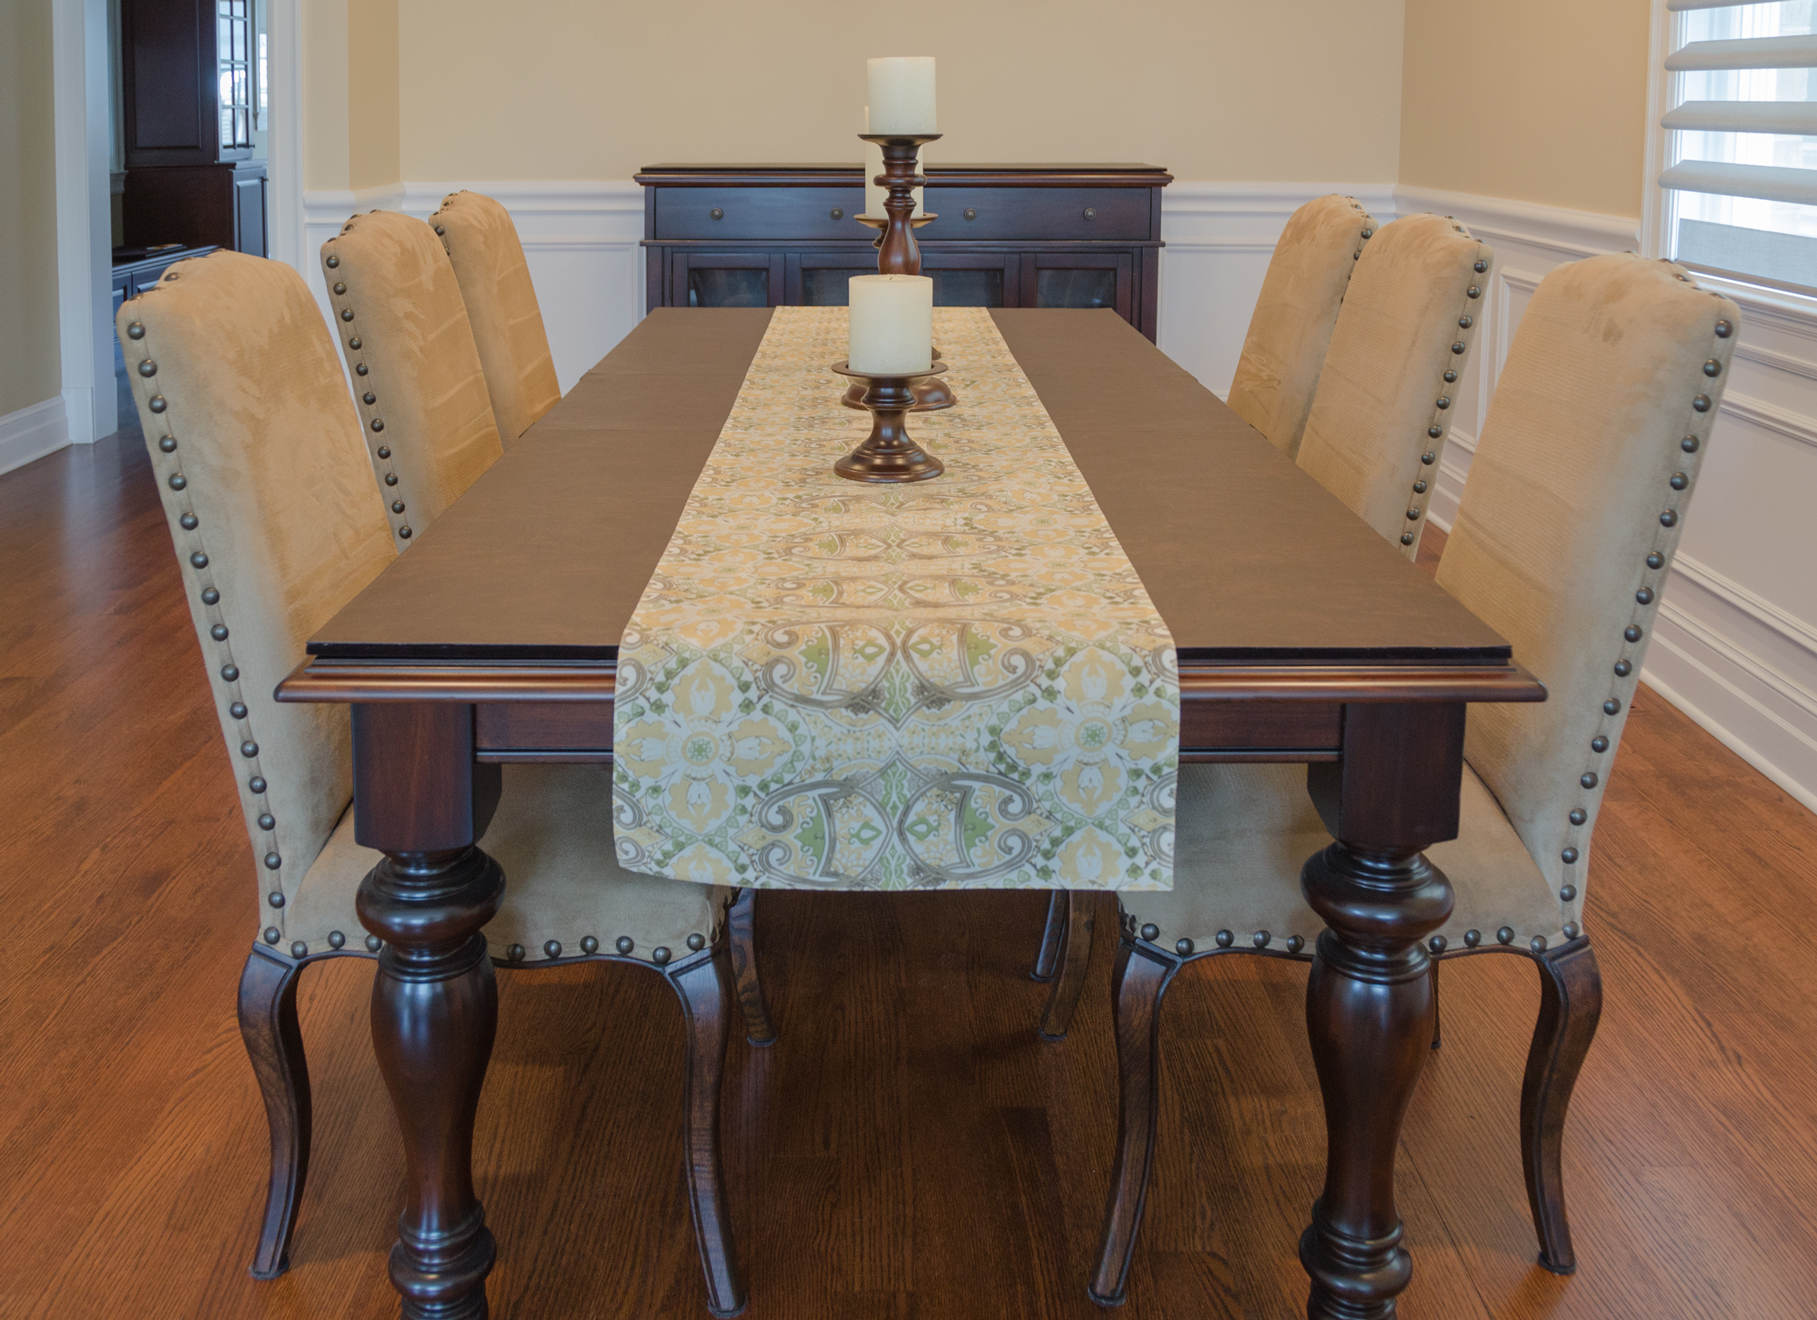 Dining Room Table Pad Protector Dining Room Table Pads Glass Top Dining Room Table Pads Dining